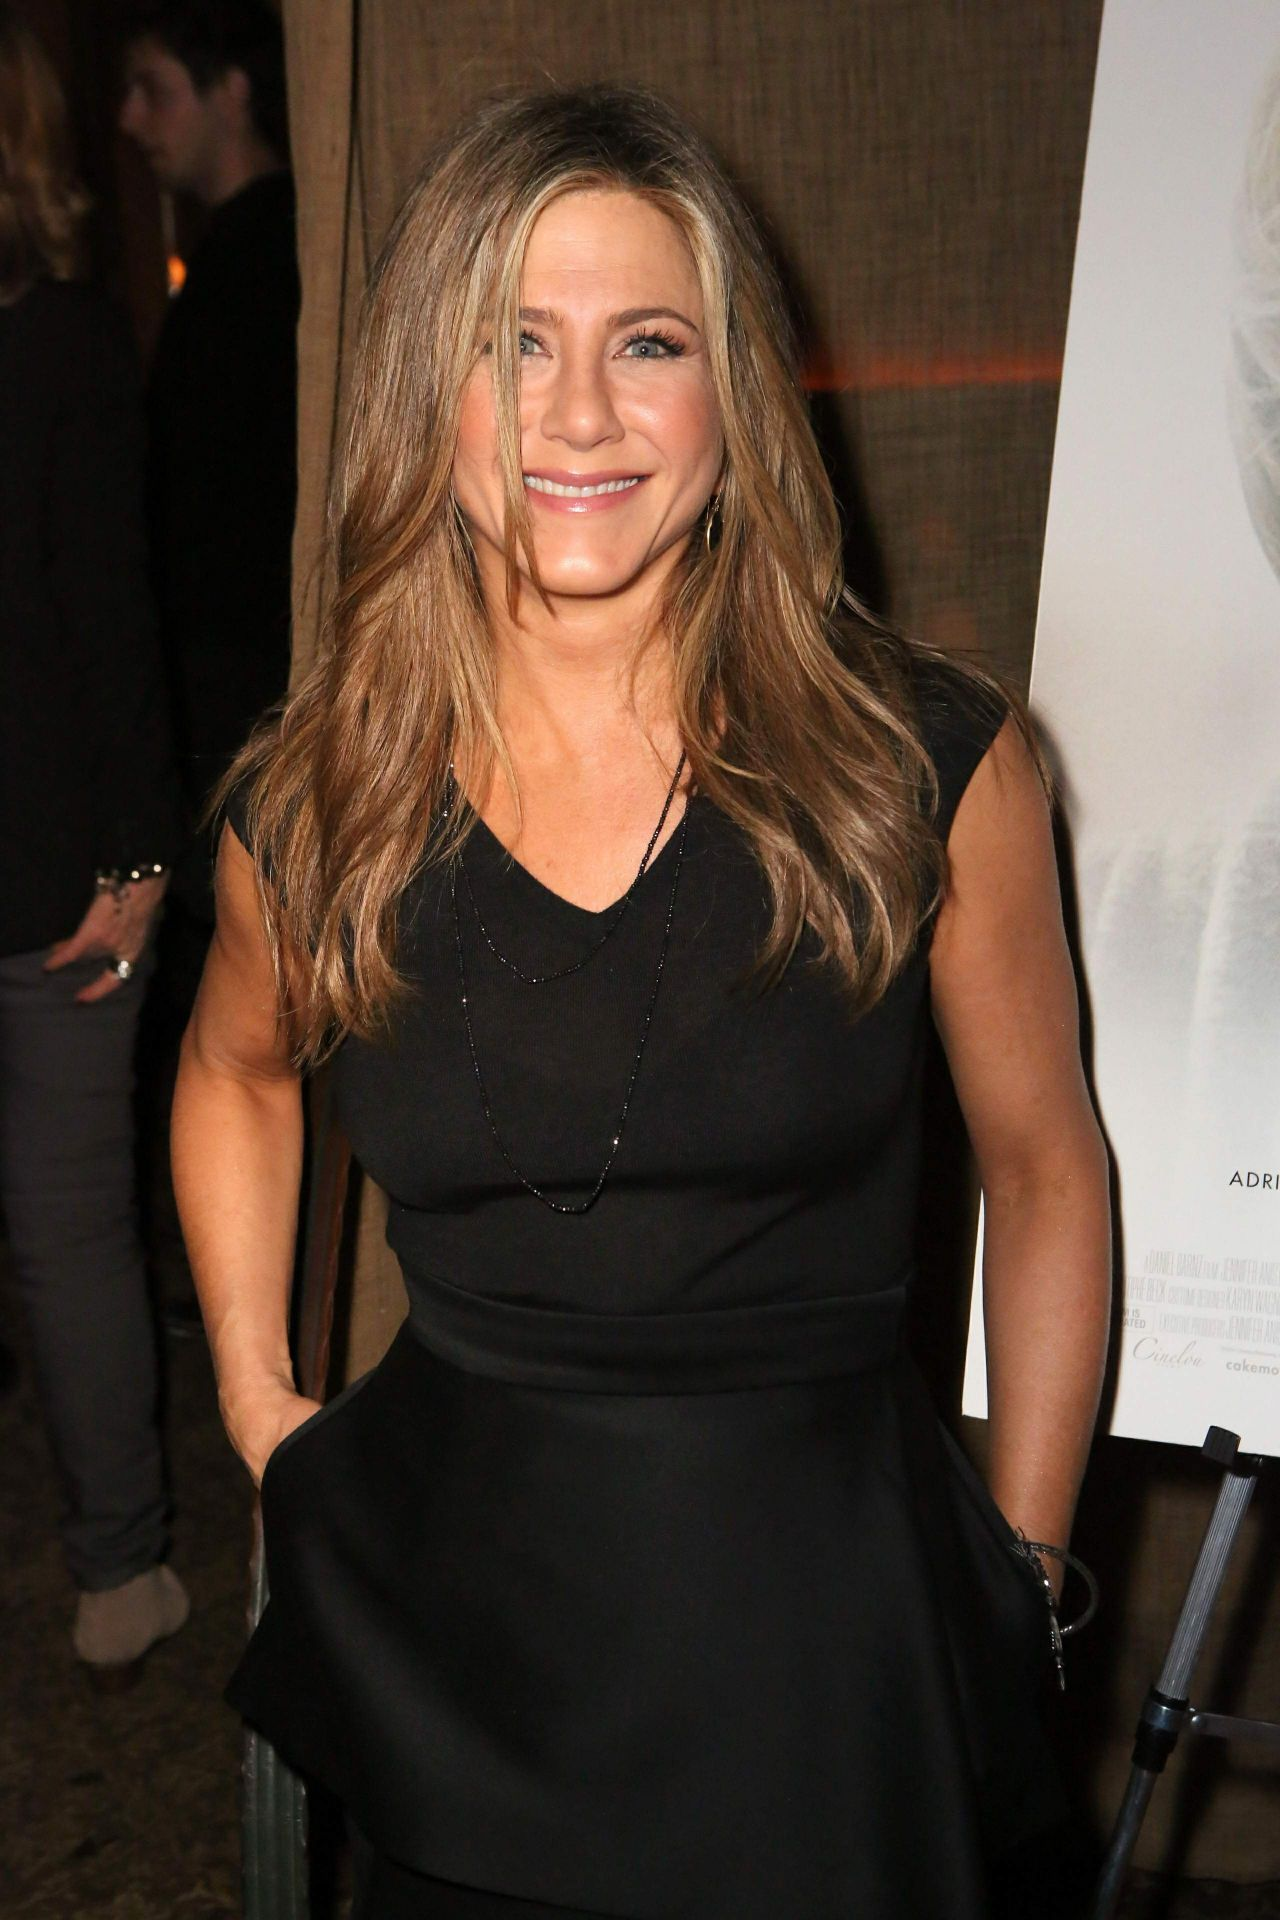 Jennifer Aniston Style - 'Cake' Party at Chateau Marmont in Hollywood ... Jennifer Aniston